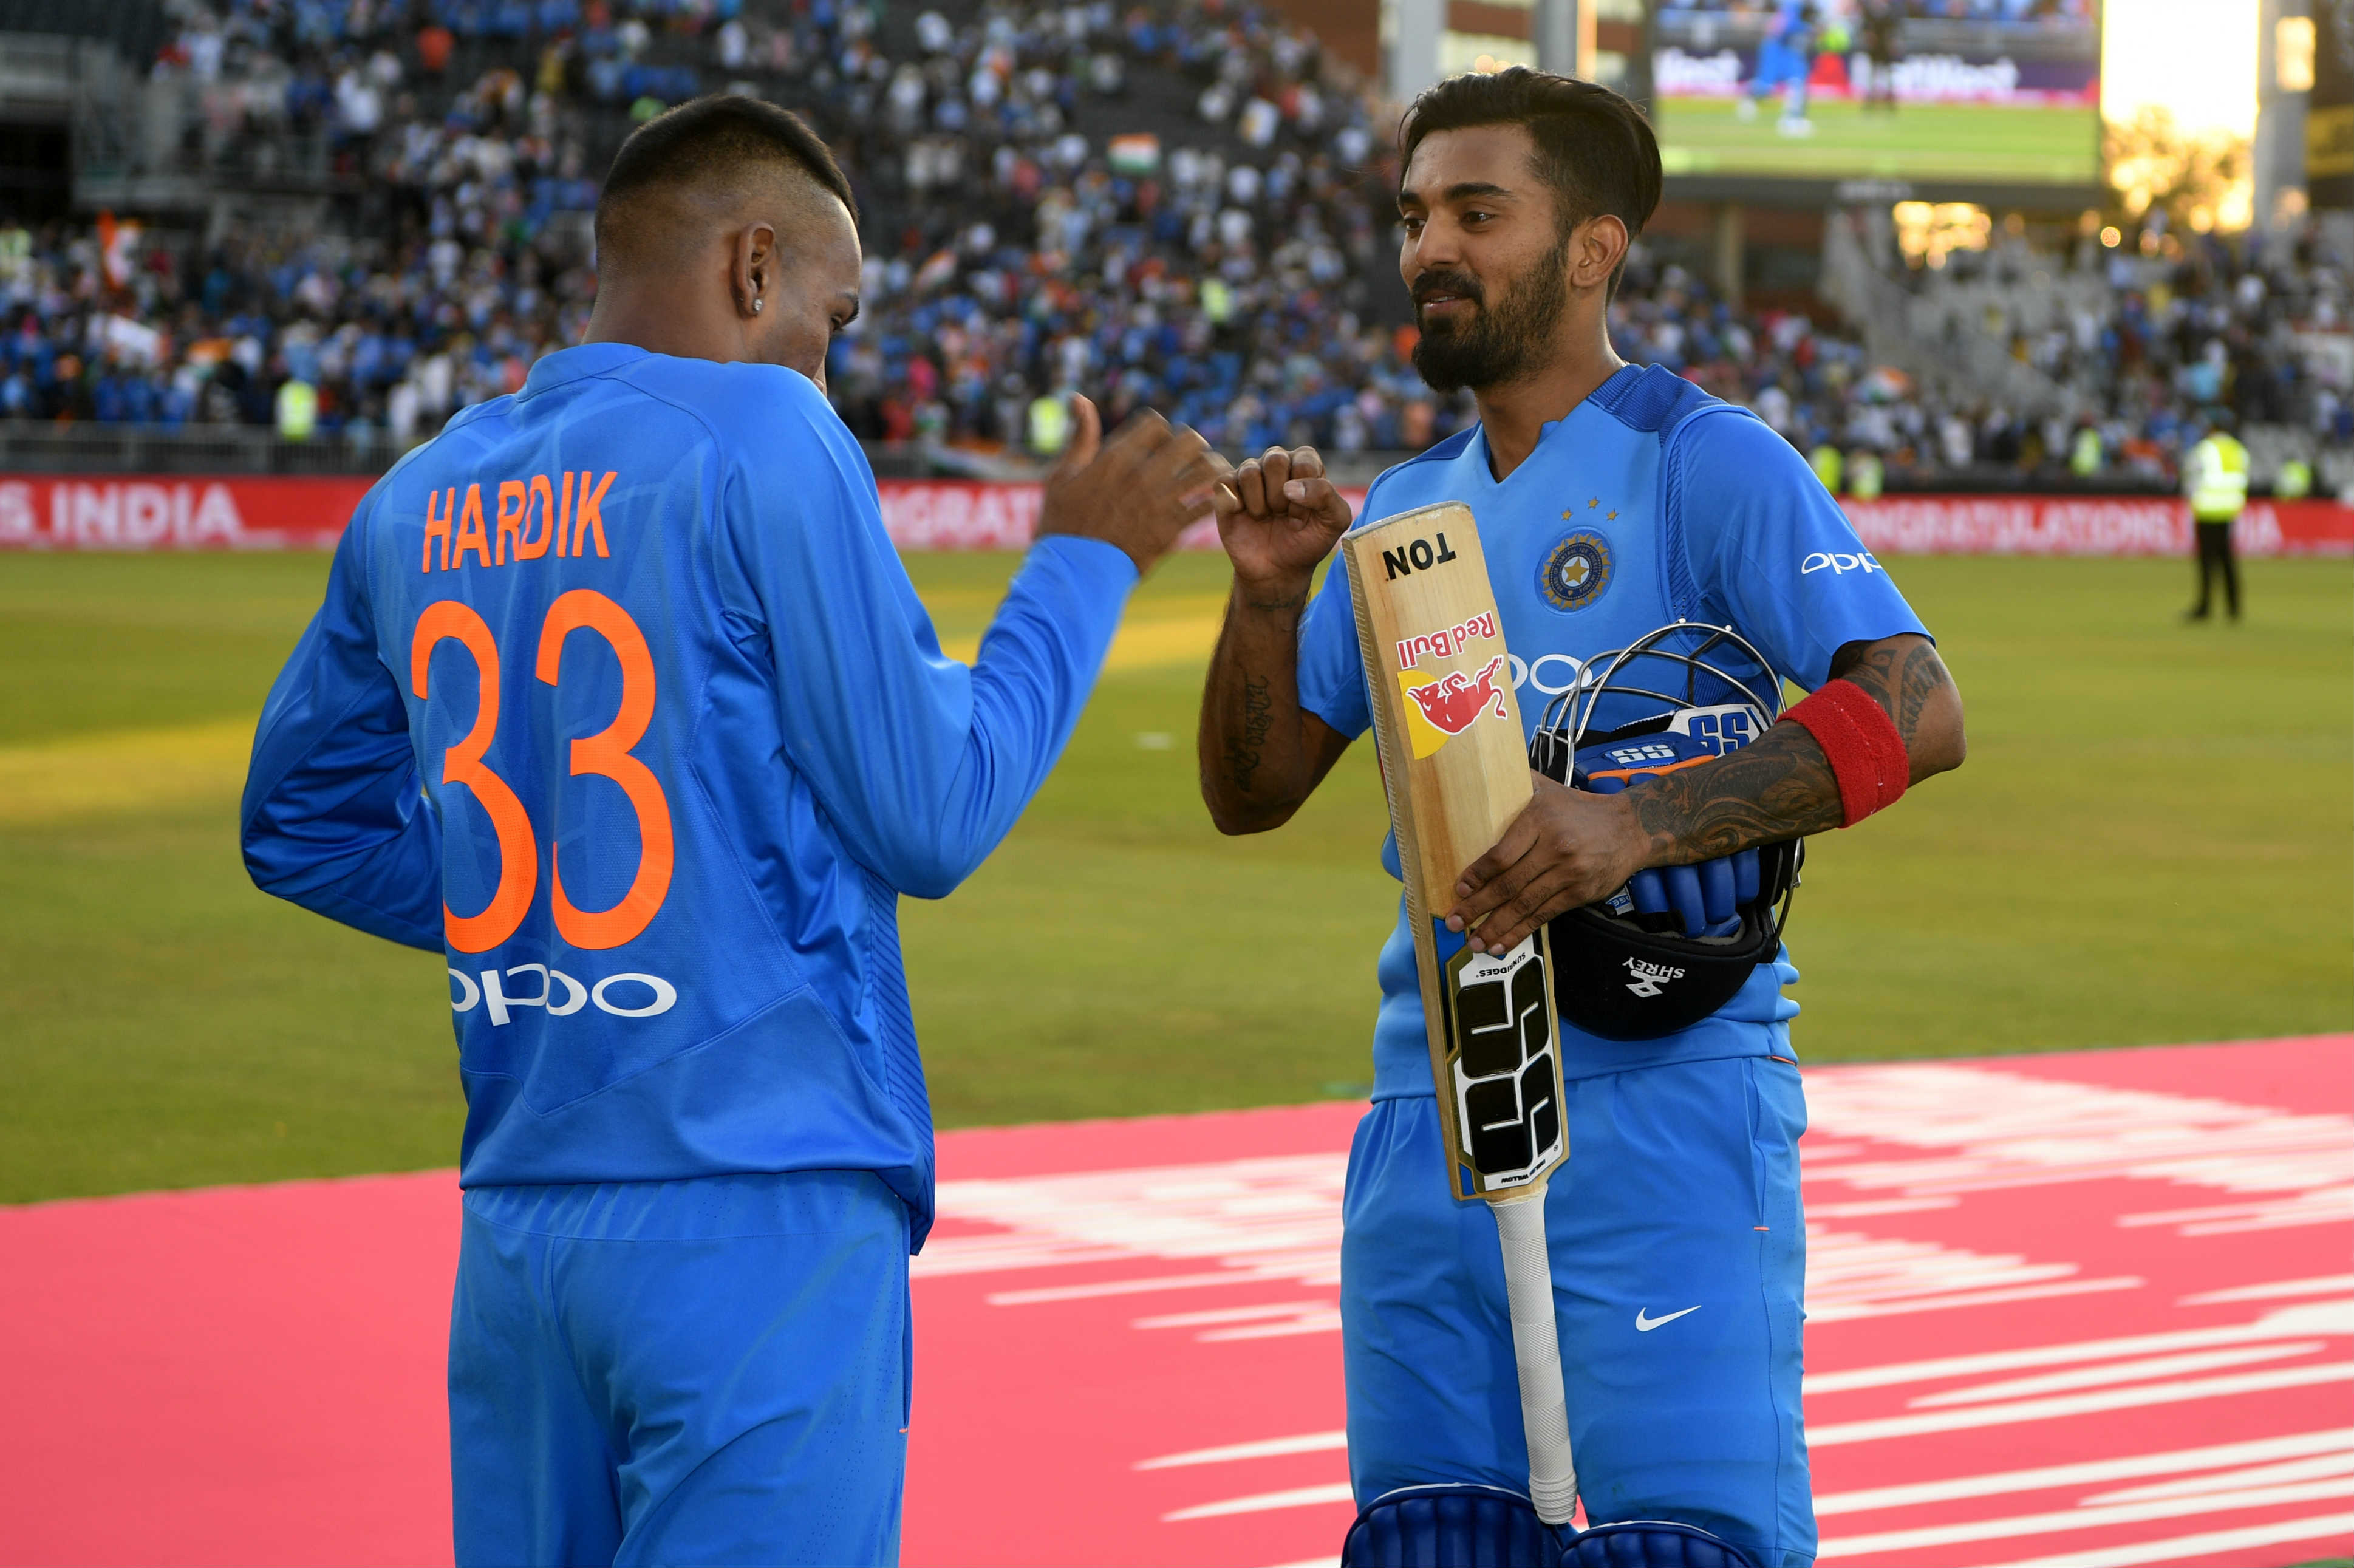 Pandya and Rahul have been slapped with show cause notices